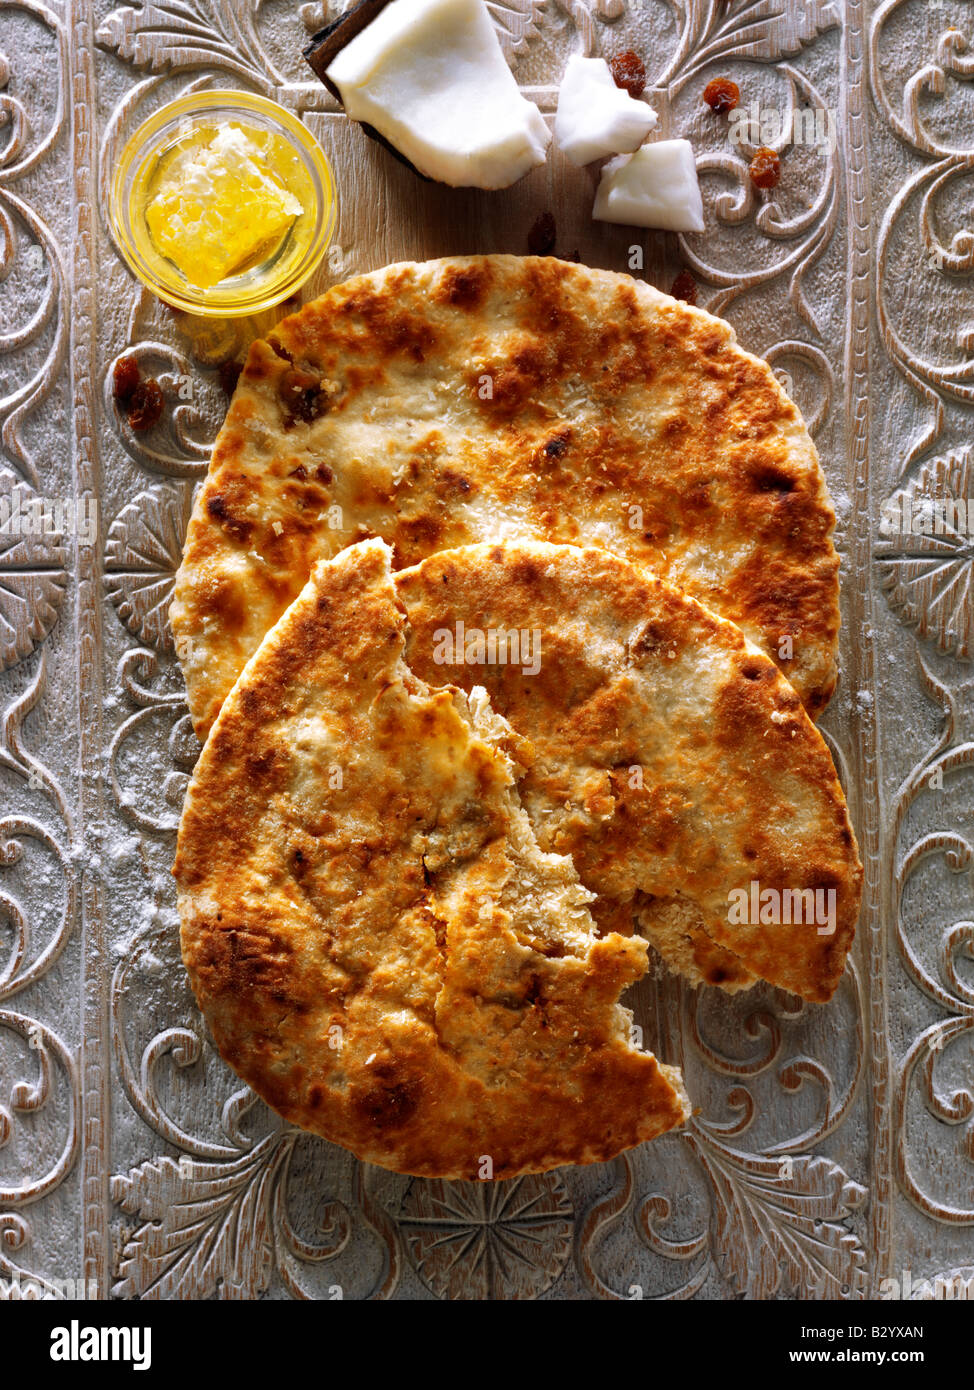 Peshwari Naan. coconut raisins et pain au miel - la cuisine indienne Photo Stock